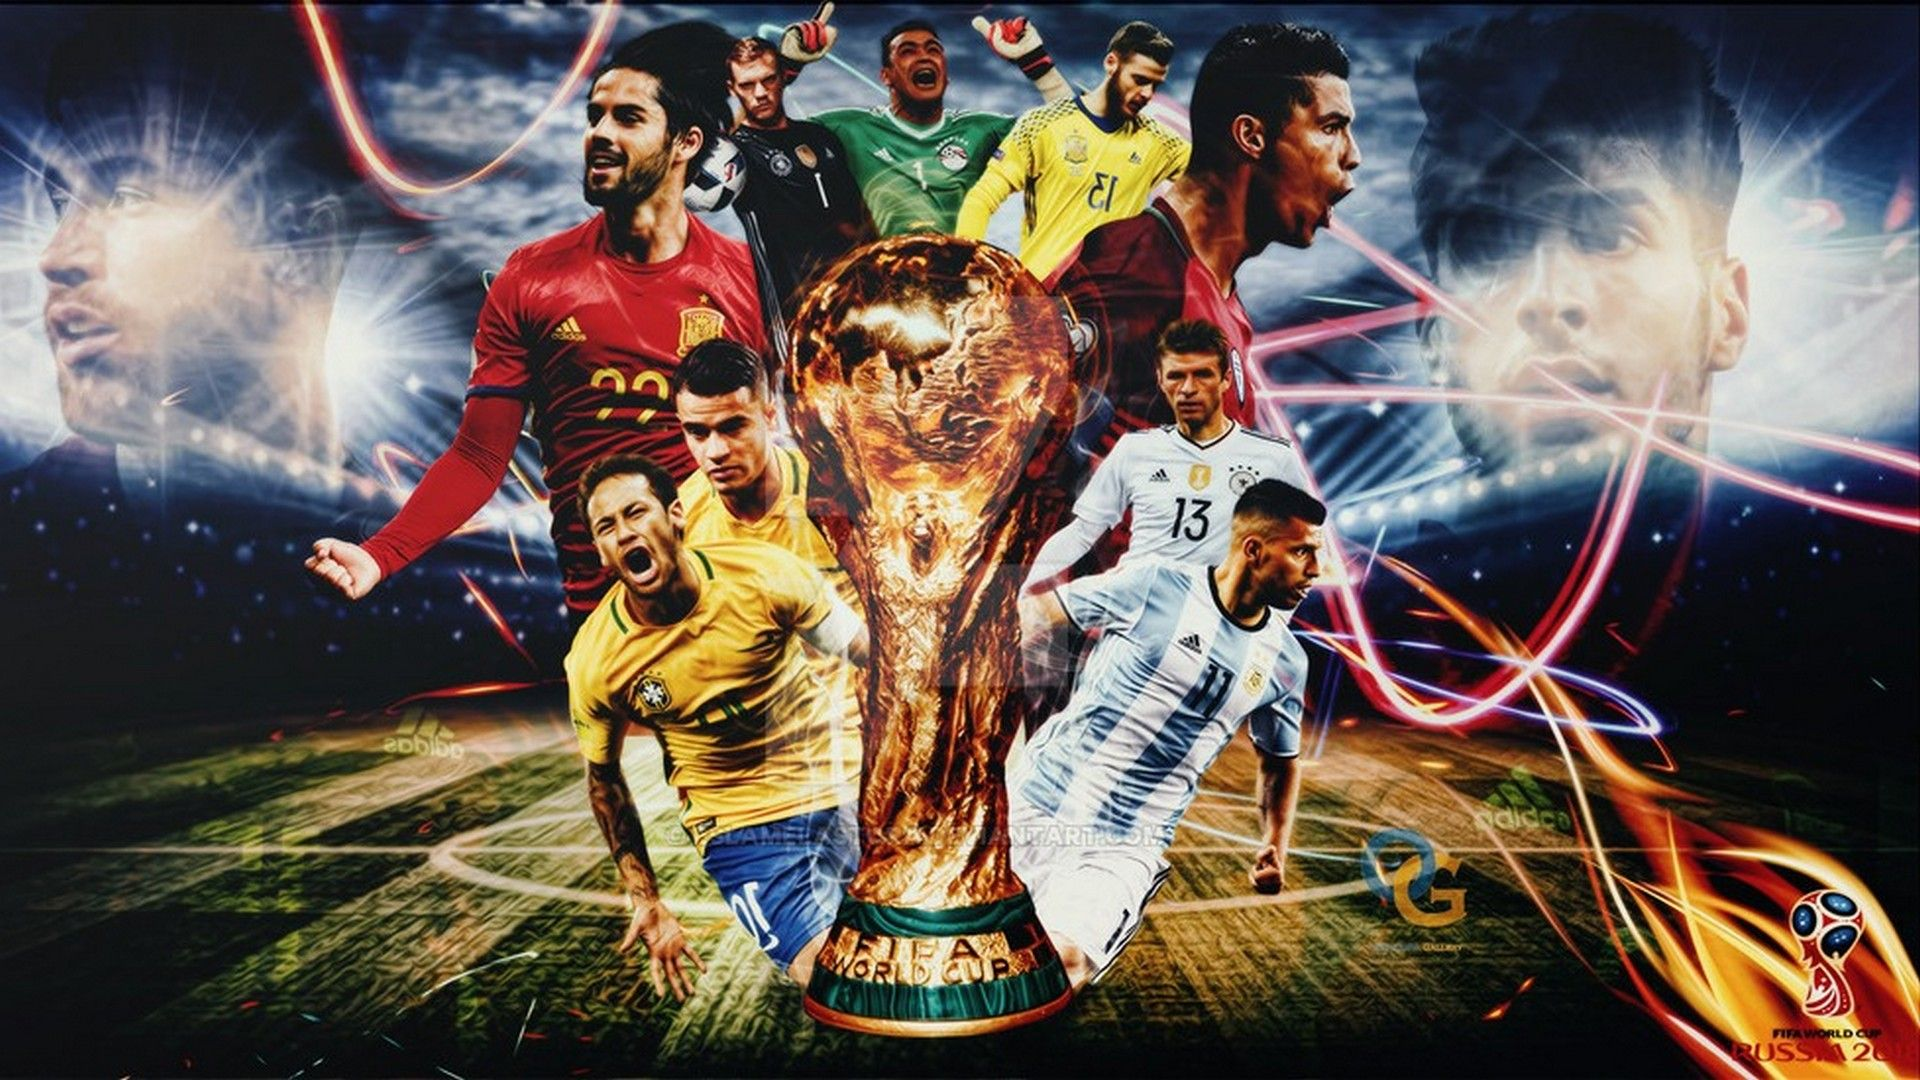 Wallpaper hd 2018 world cup wallpaper world cup russia - Brazil football hd wallpapers 2018 ...